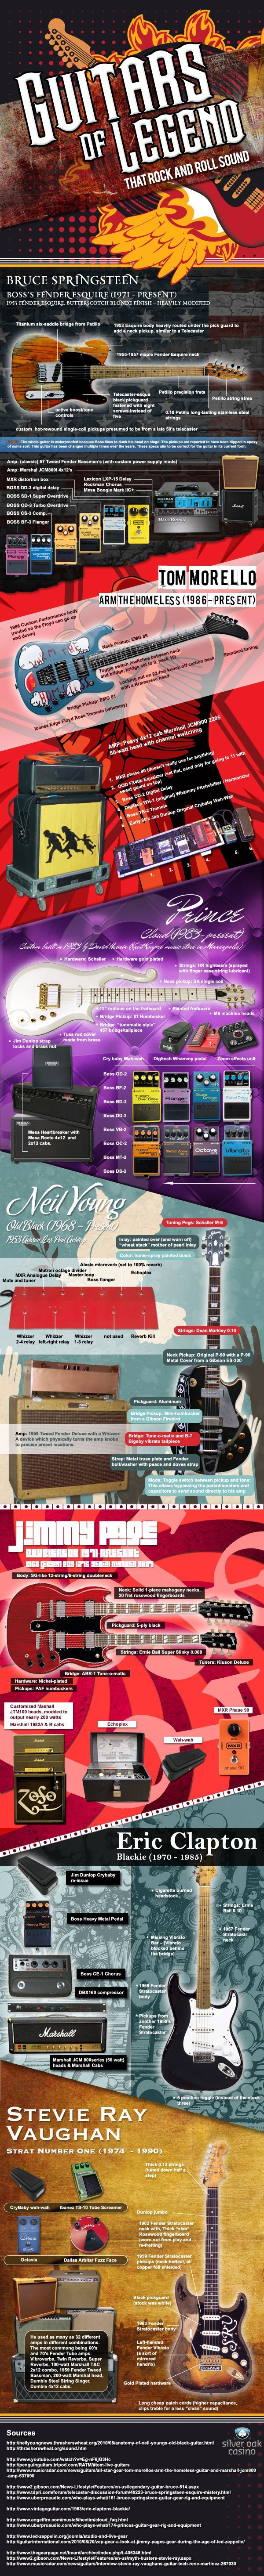 Guitar Rigs of the Legends!